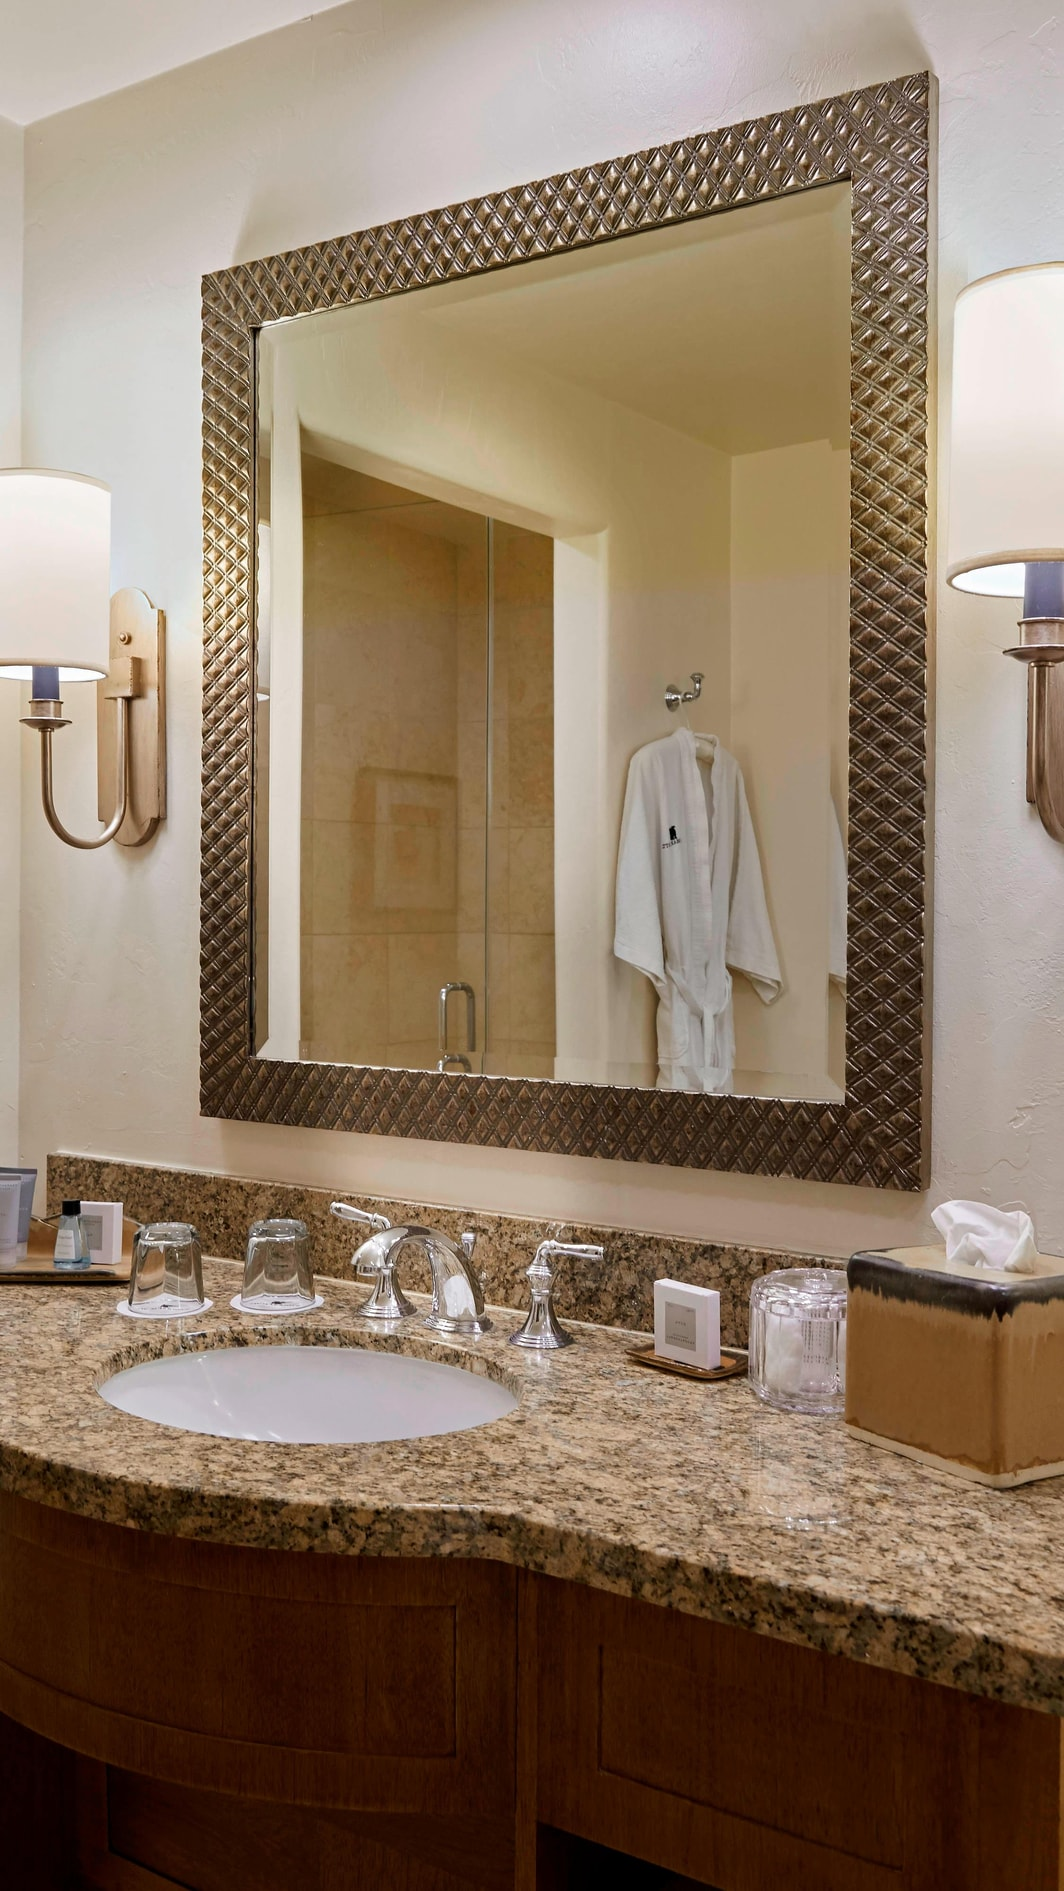 Bathroom at JW Marriott Tucson